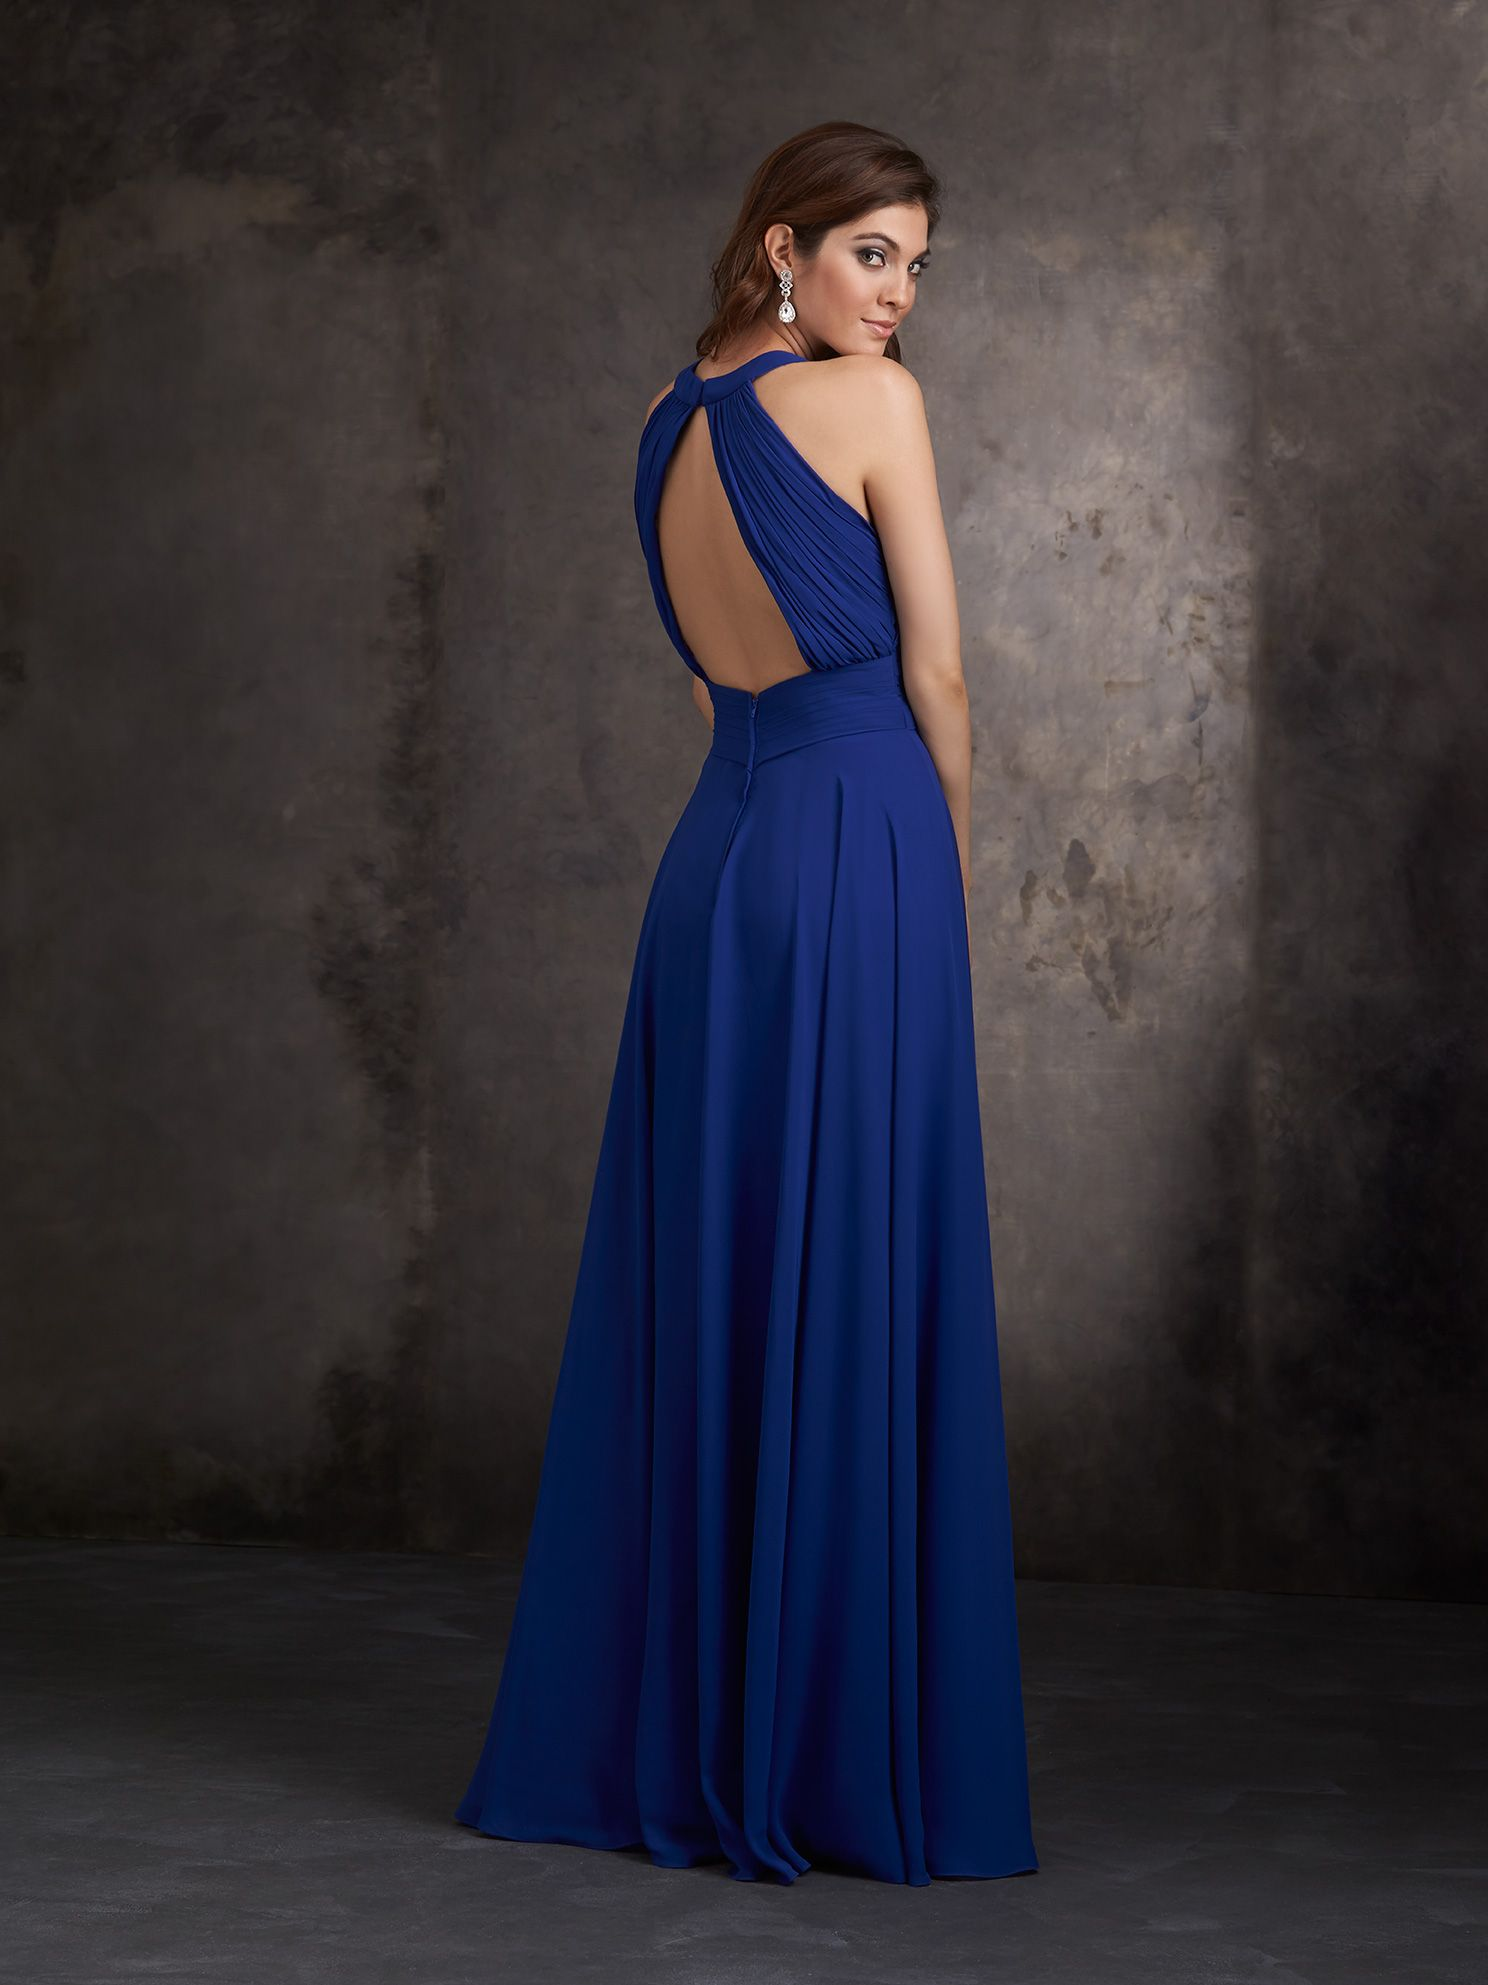 Allure bridals style 1427 i really like the back of this dress allure bridals style 1427 i really like the back of this dress ombrellifo Choice Image